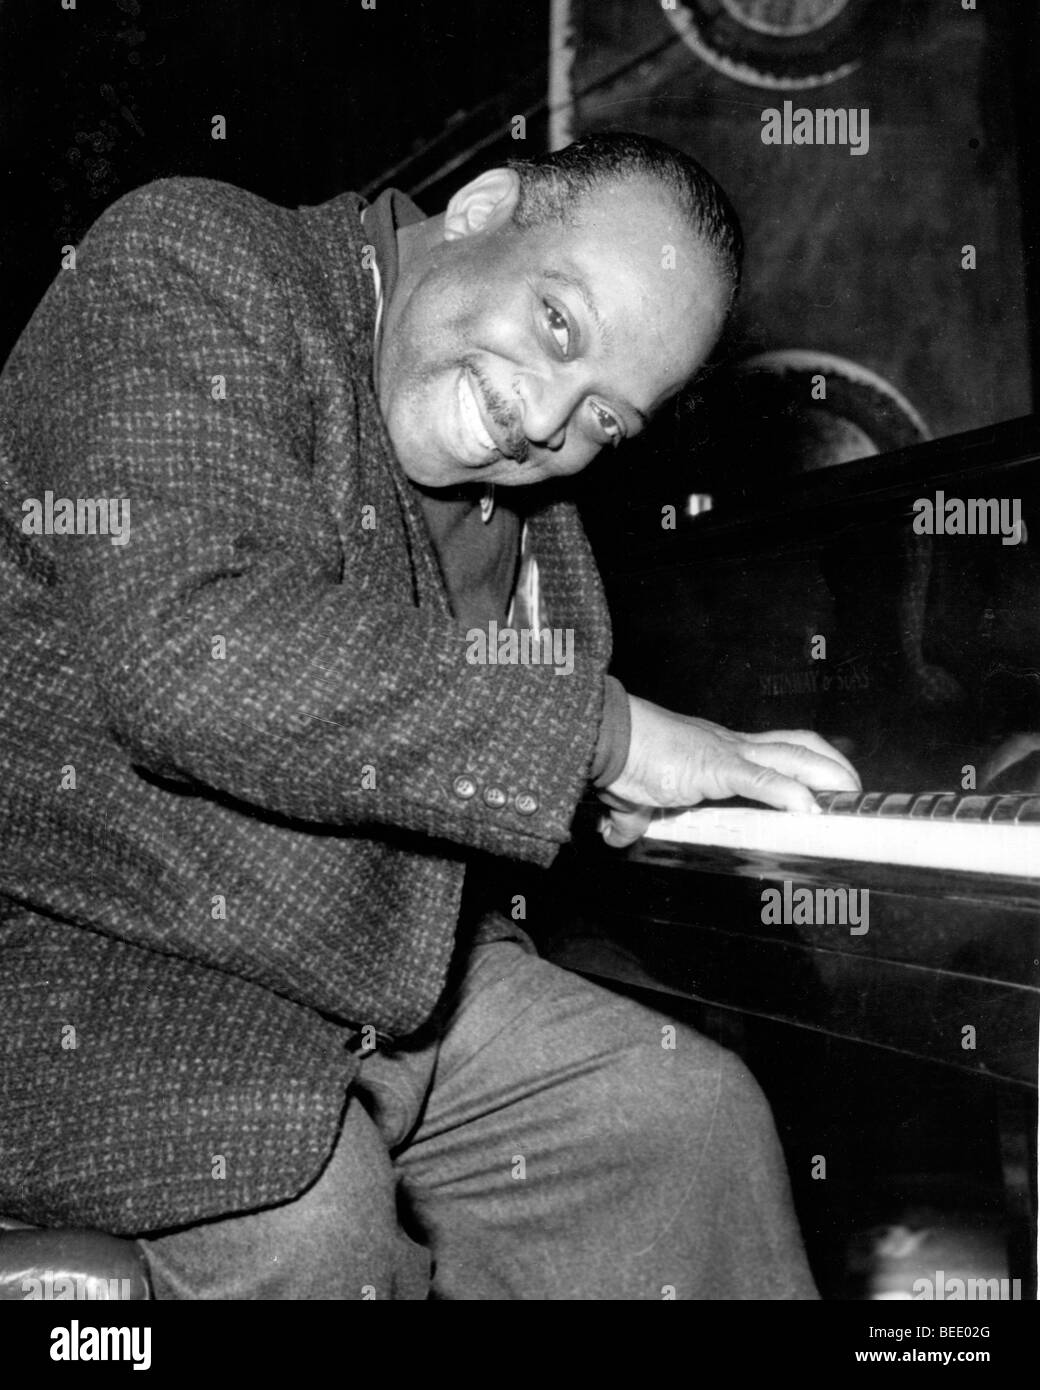 Pianist and big band leader COUNT BASIE in 1957. Stock Photo